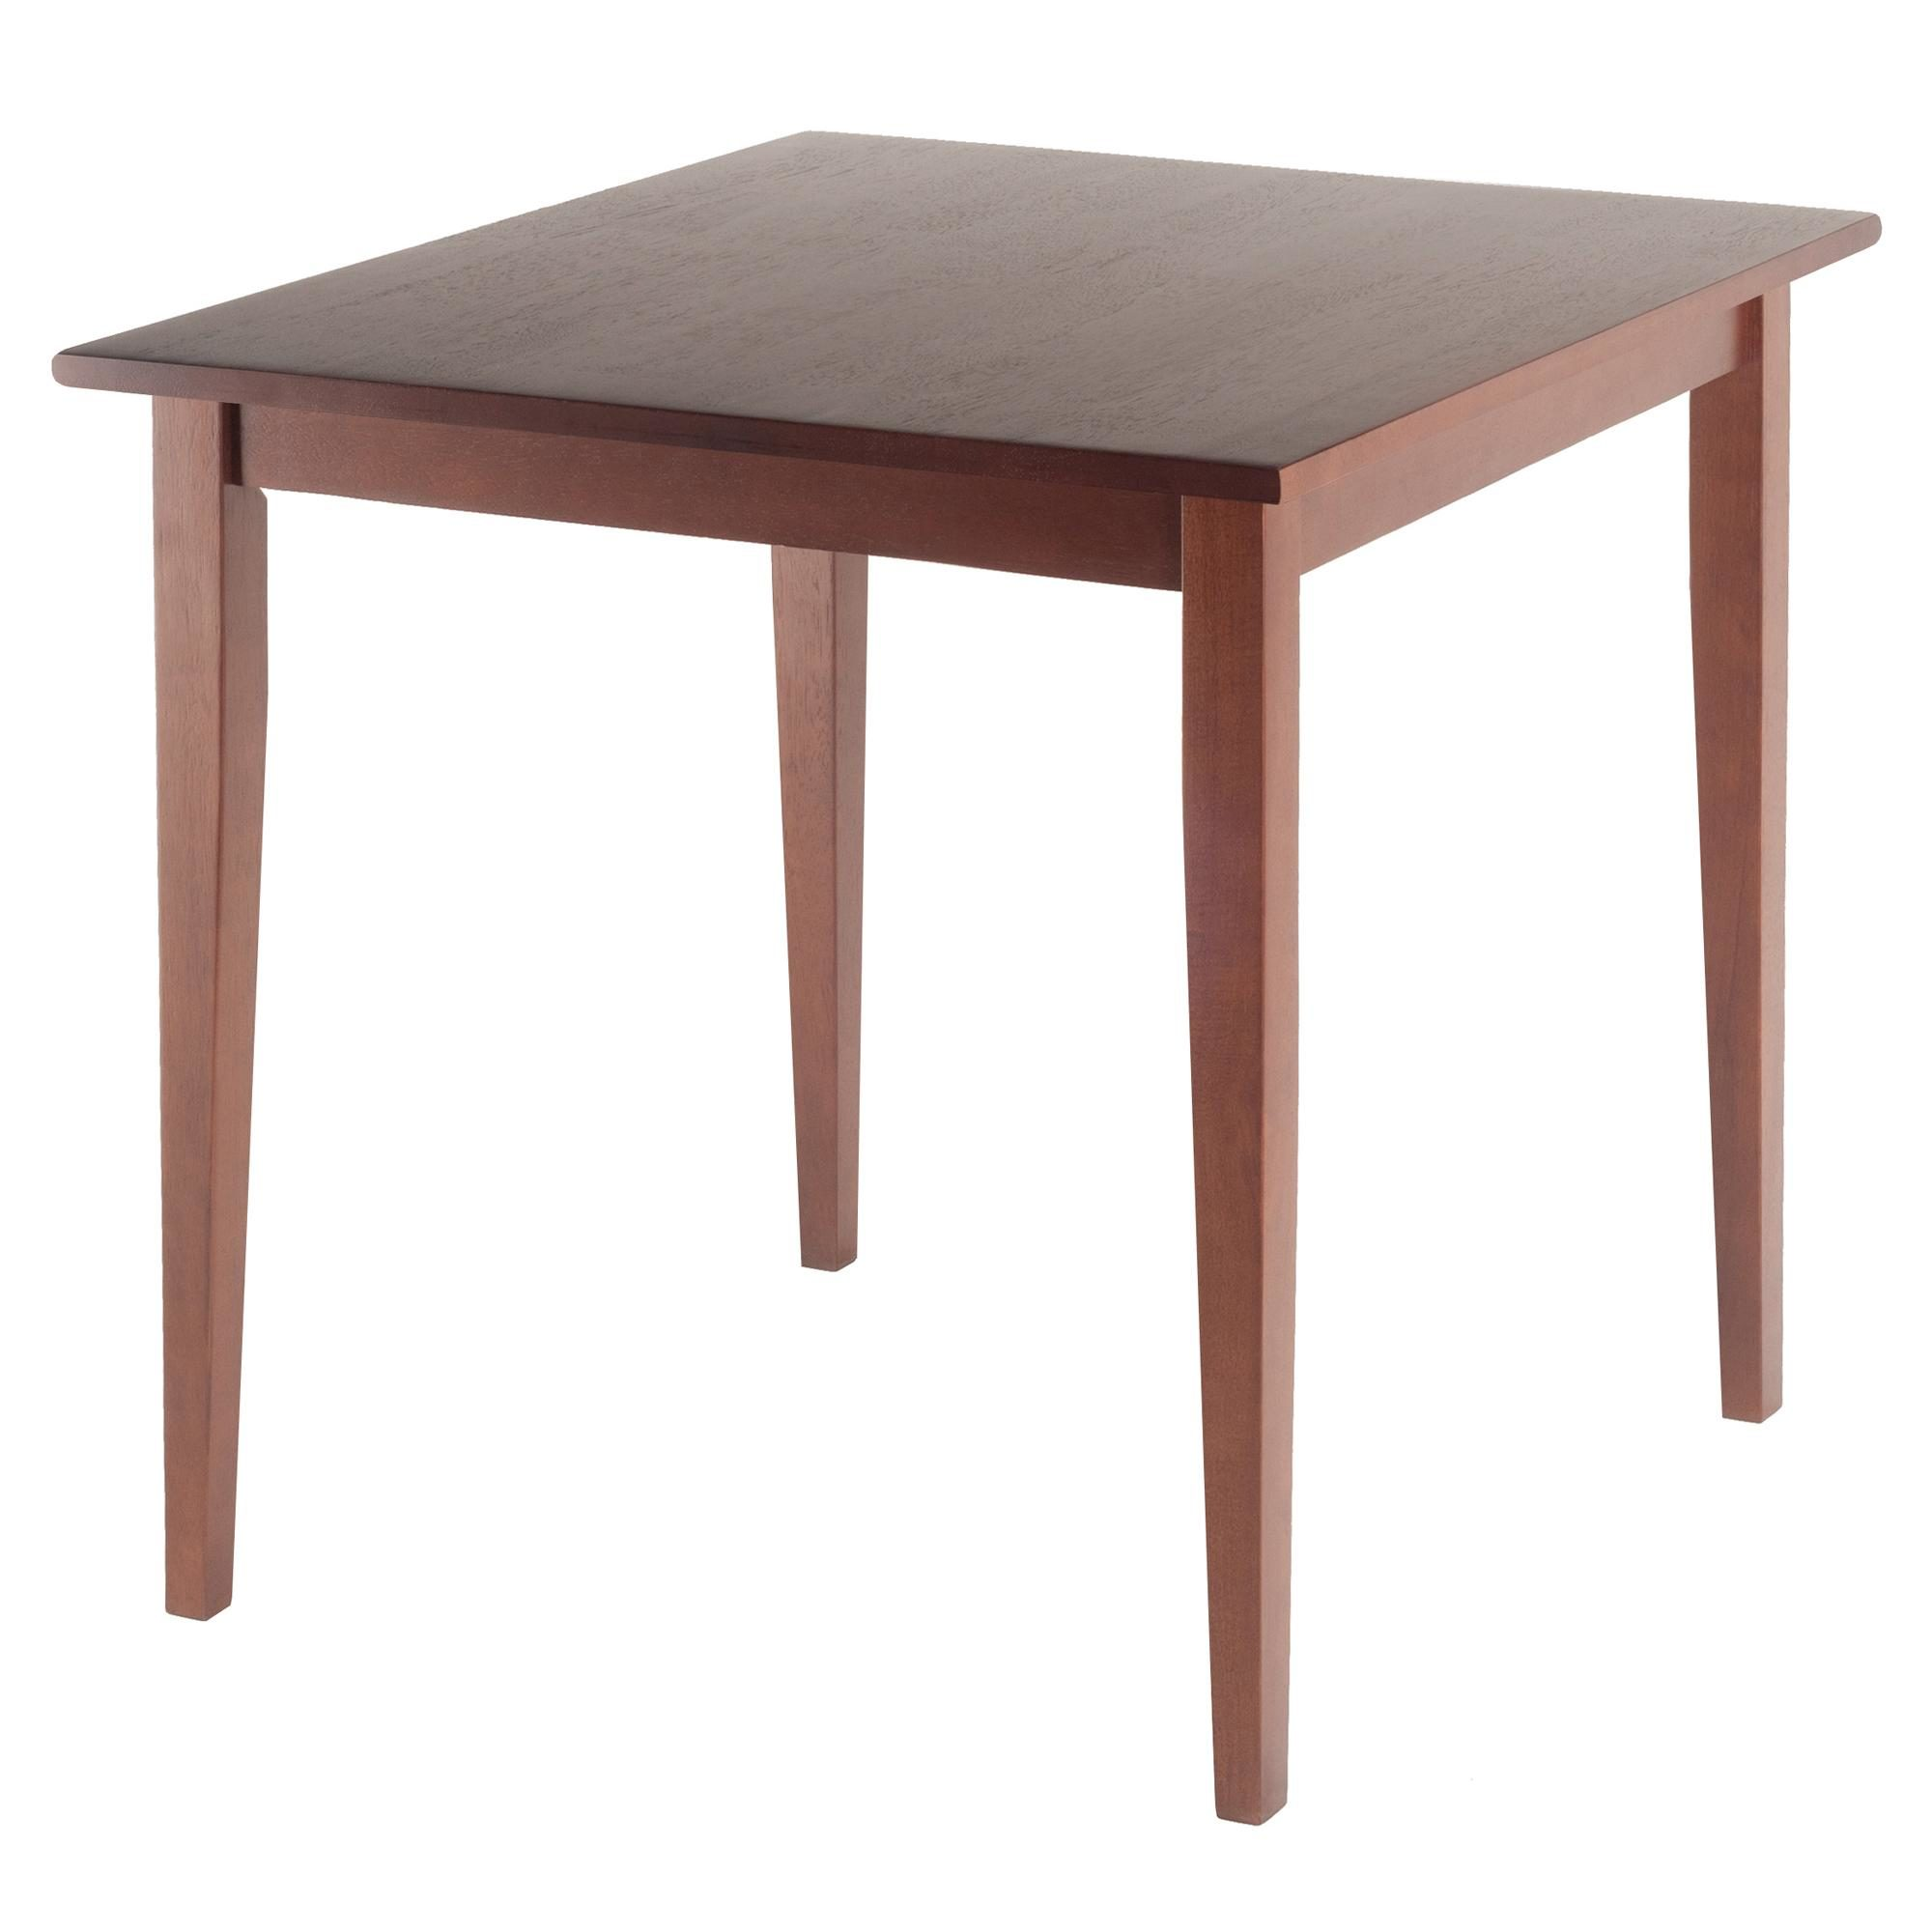 Dining tables square